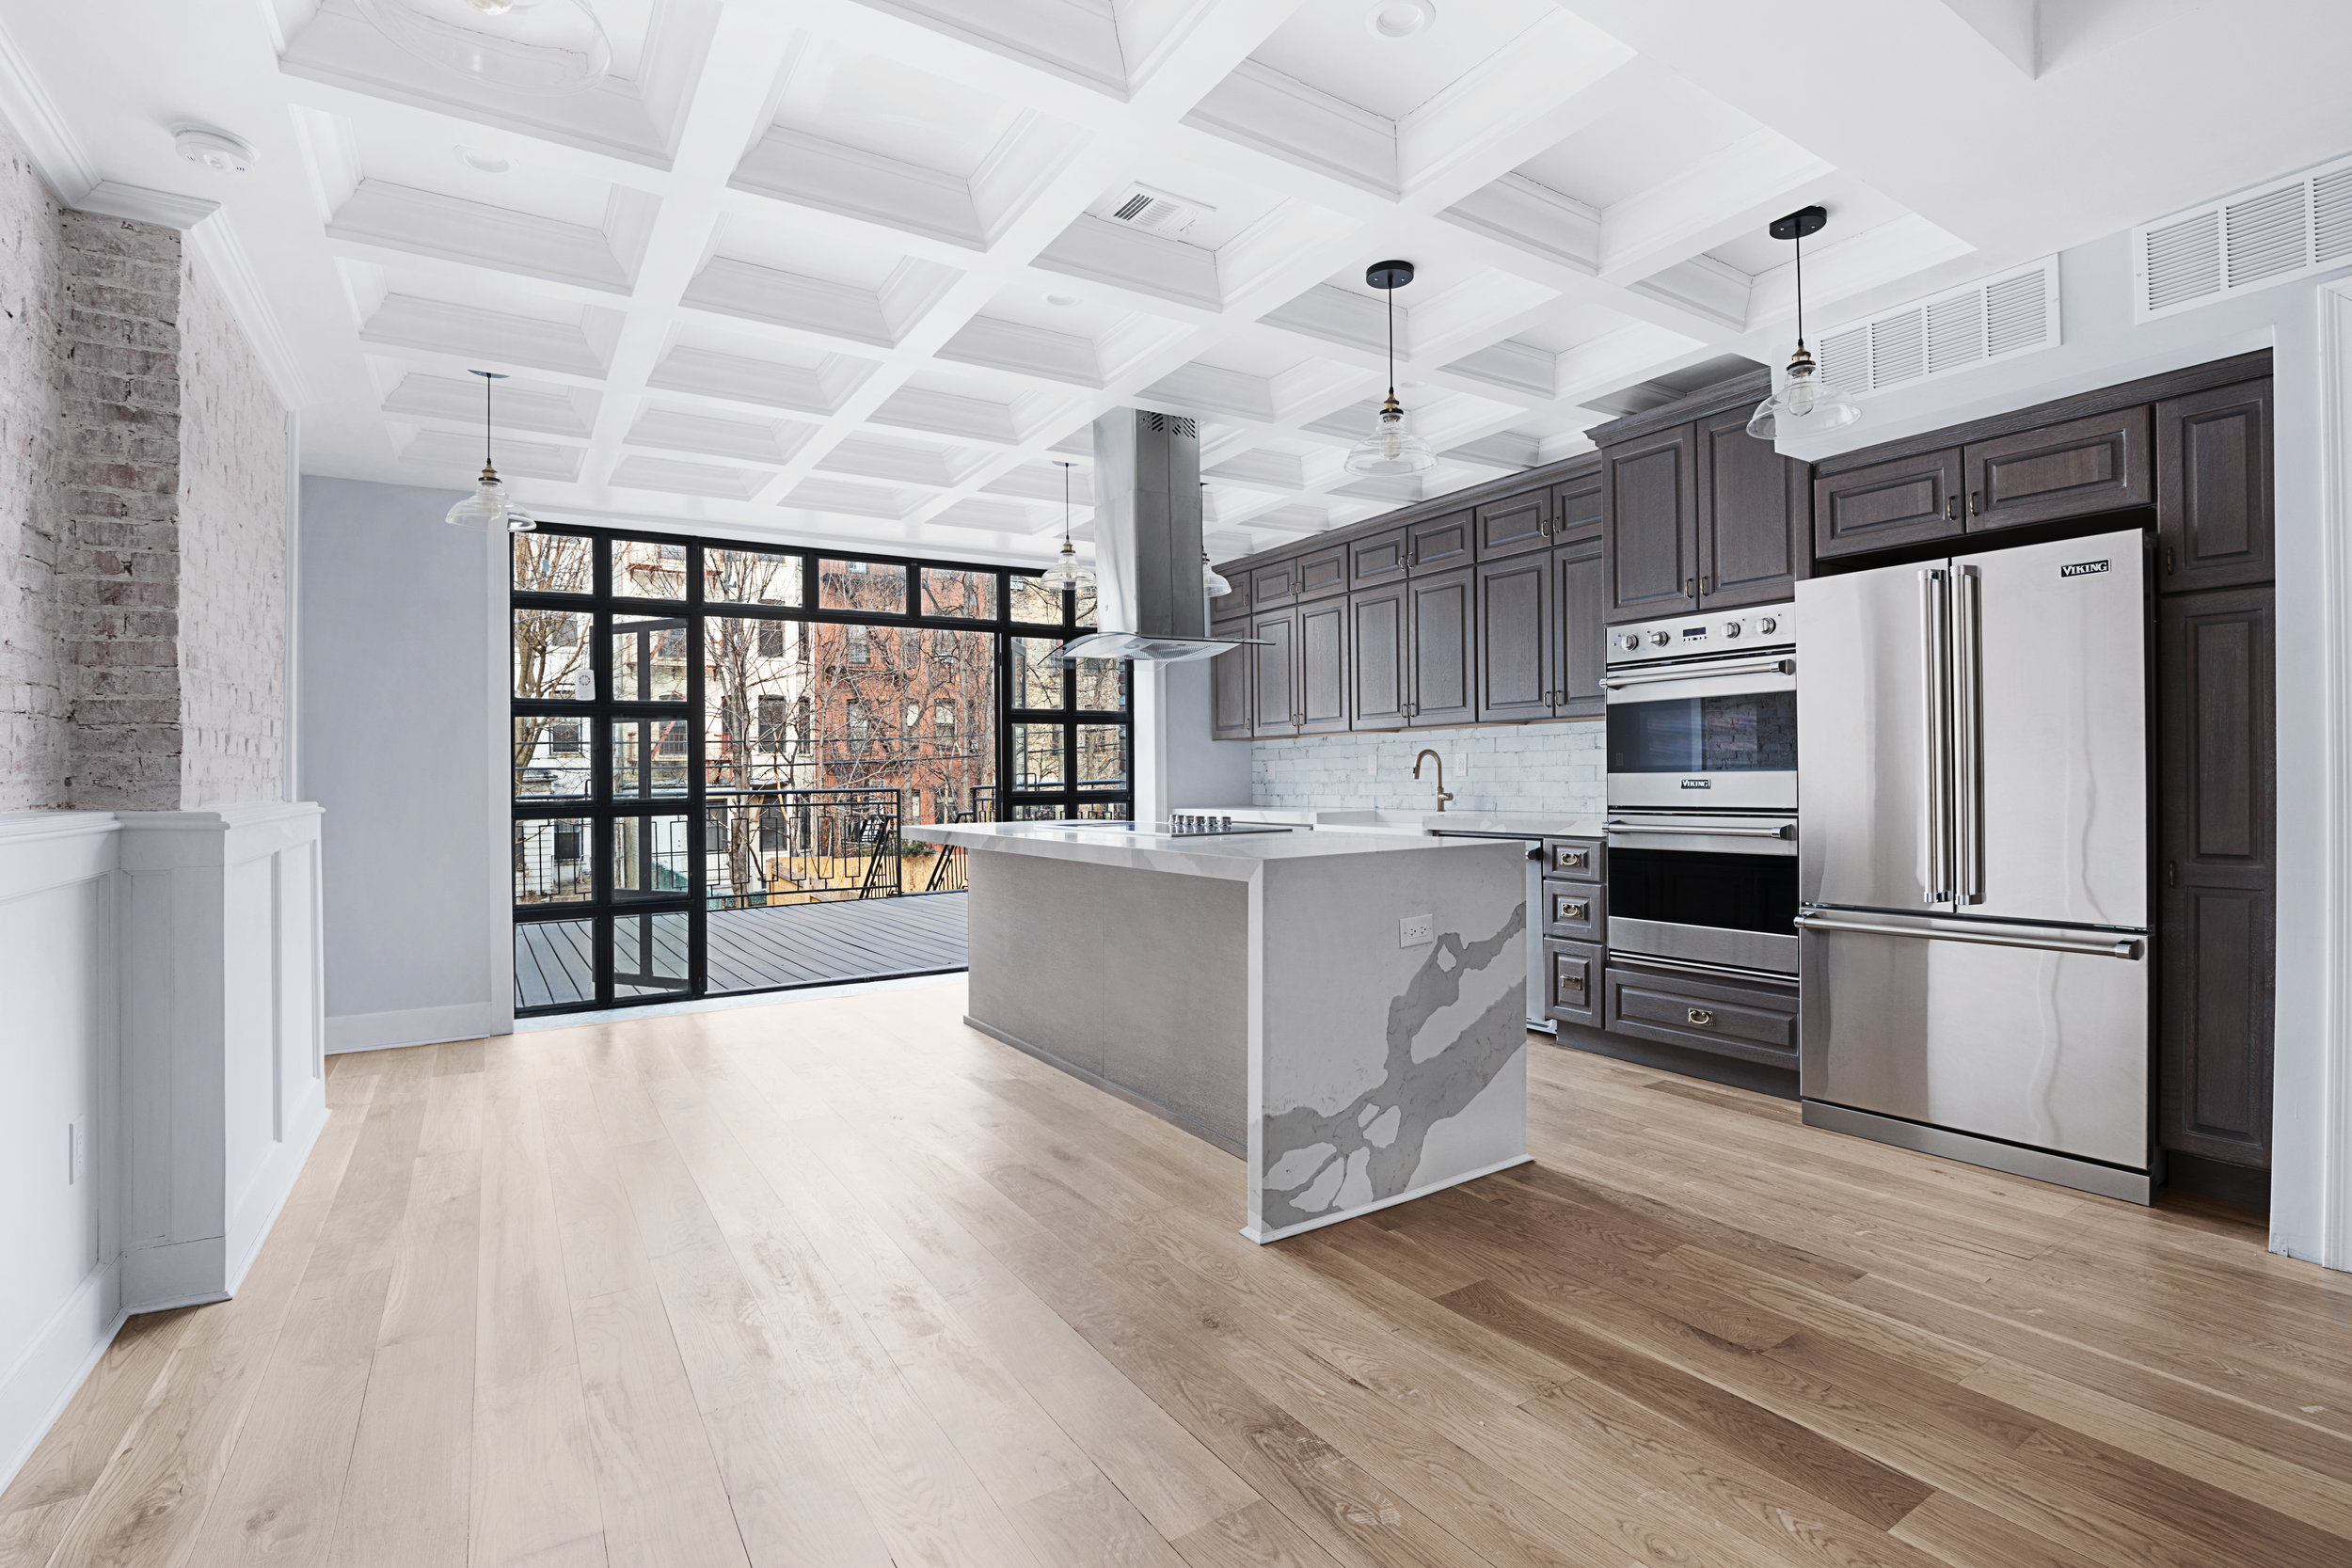 gut renovated and loft-like 3-family townhouse n the Prospect - Lefferts Gardens